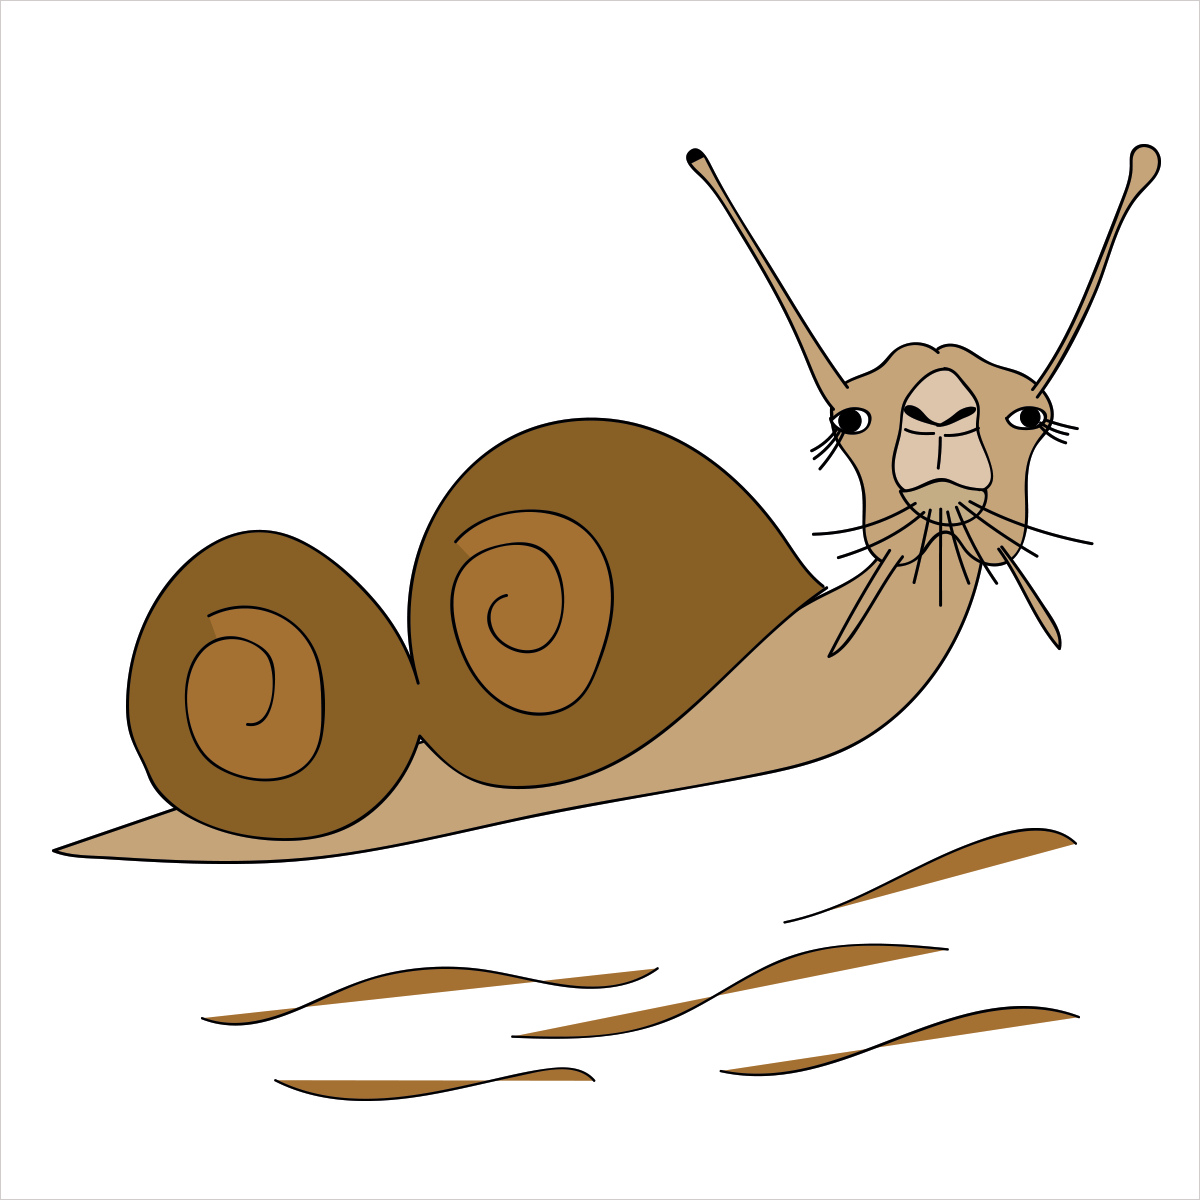 She's a two-humped beauty that's slower than molasses and can go as long as seven months without water in the desert. She is CAMELSNAIL